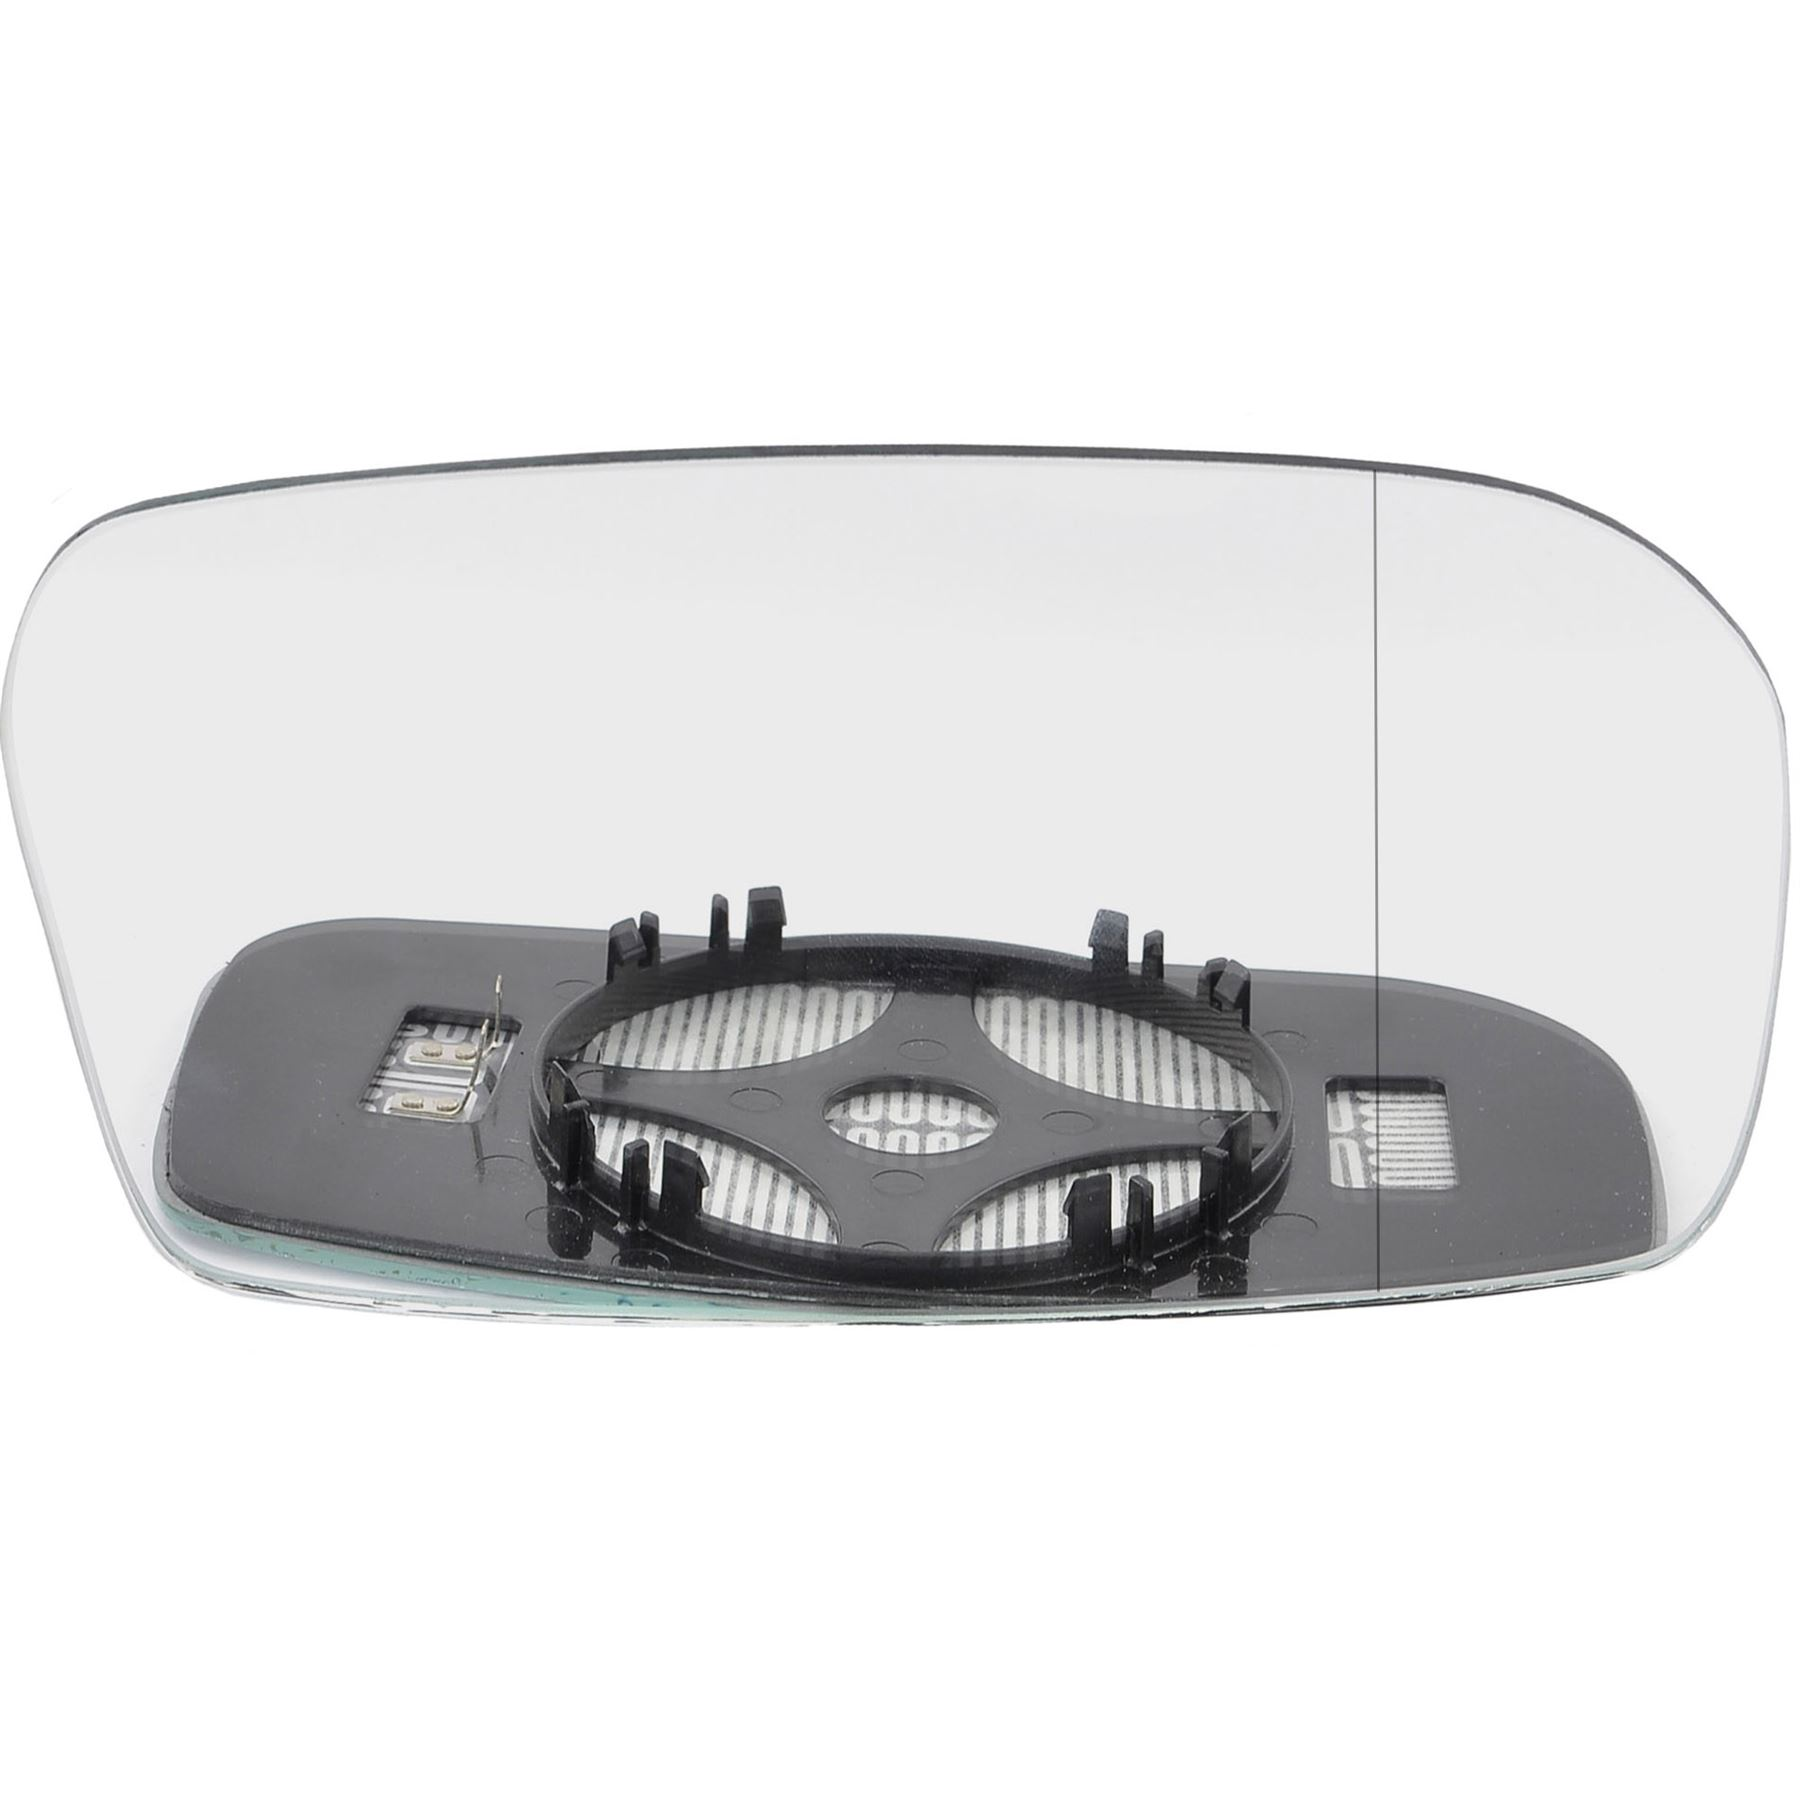 New Left Mirror Glass with Backing Non Heated Fits 2001-2005 Honda Civic